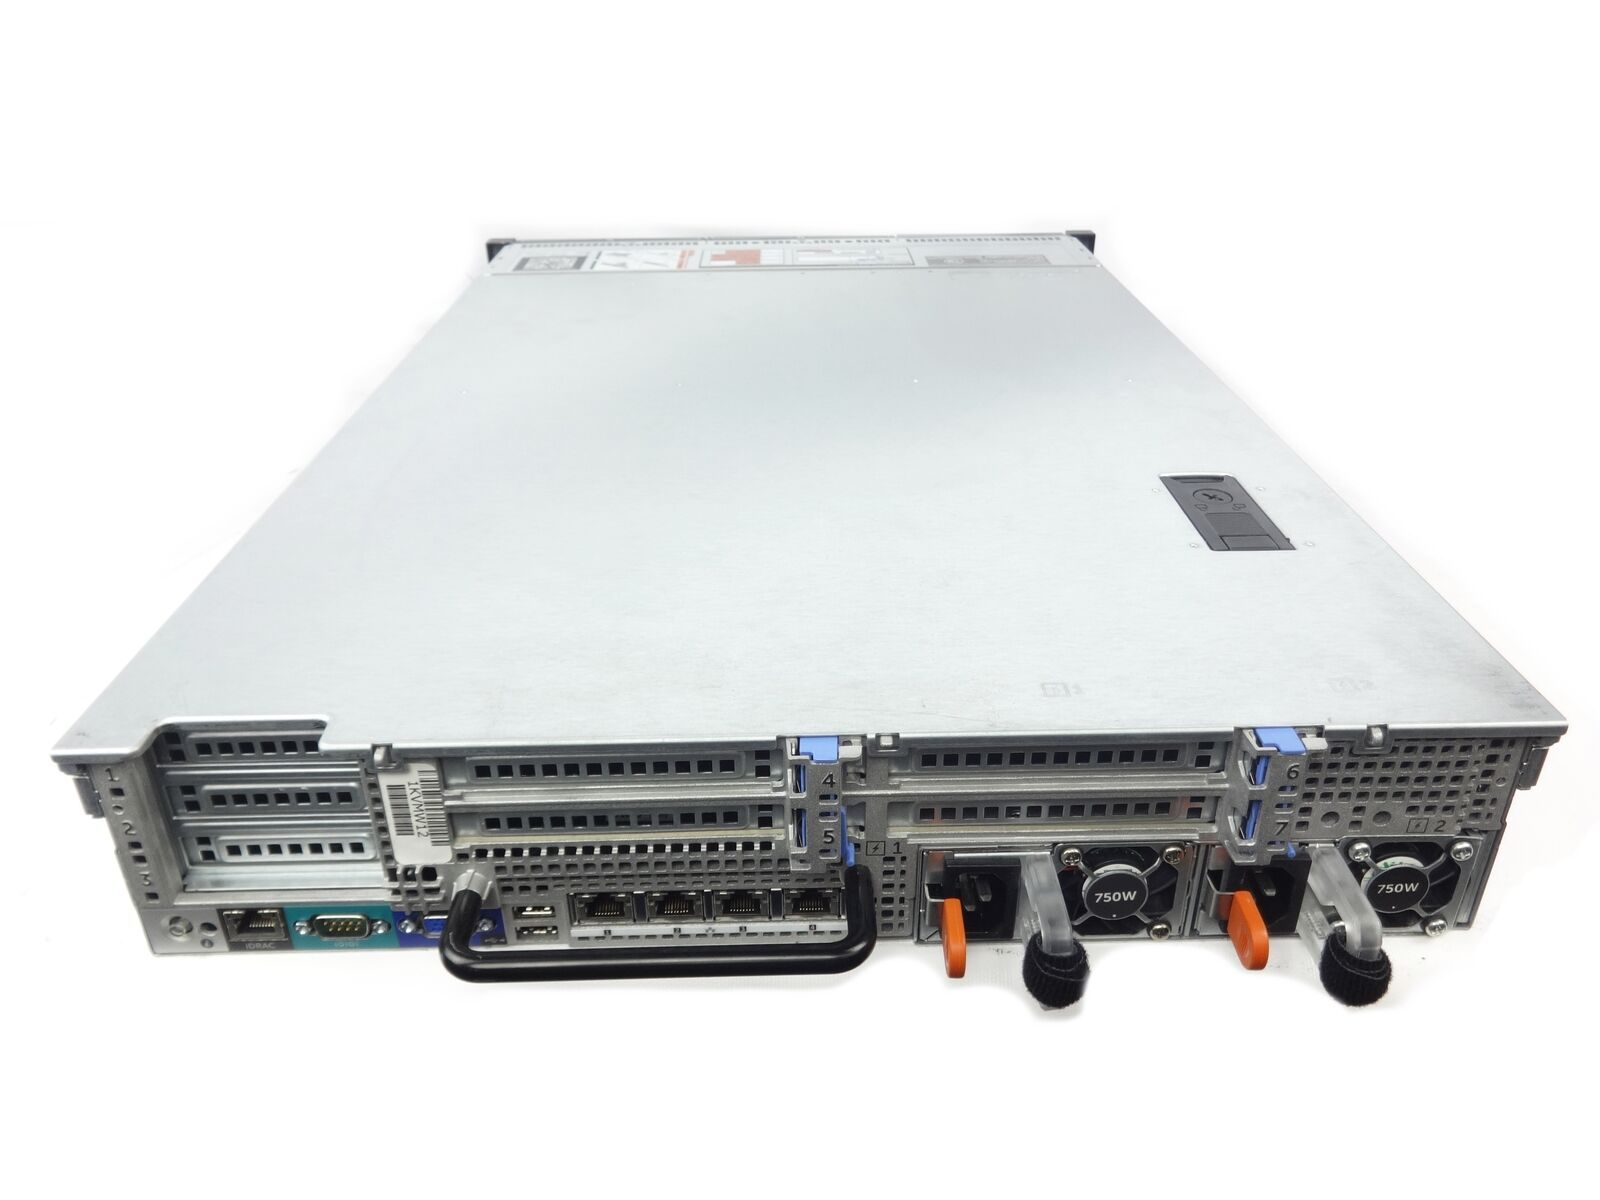 Dell Poweredge R720 Server| 2x 6C 2 3GHZ | and 20 similar items